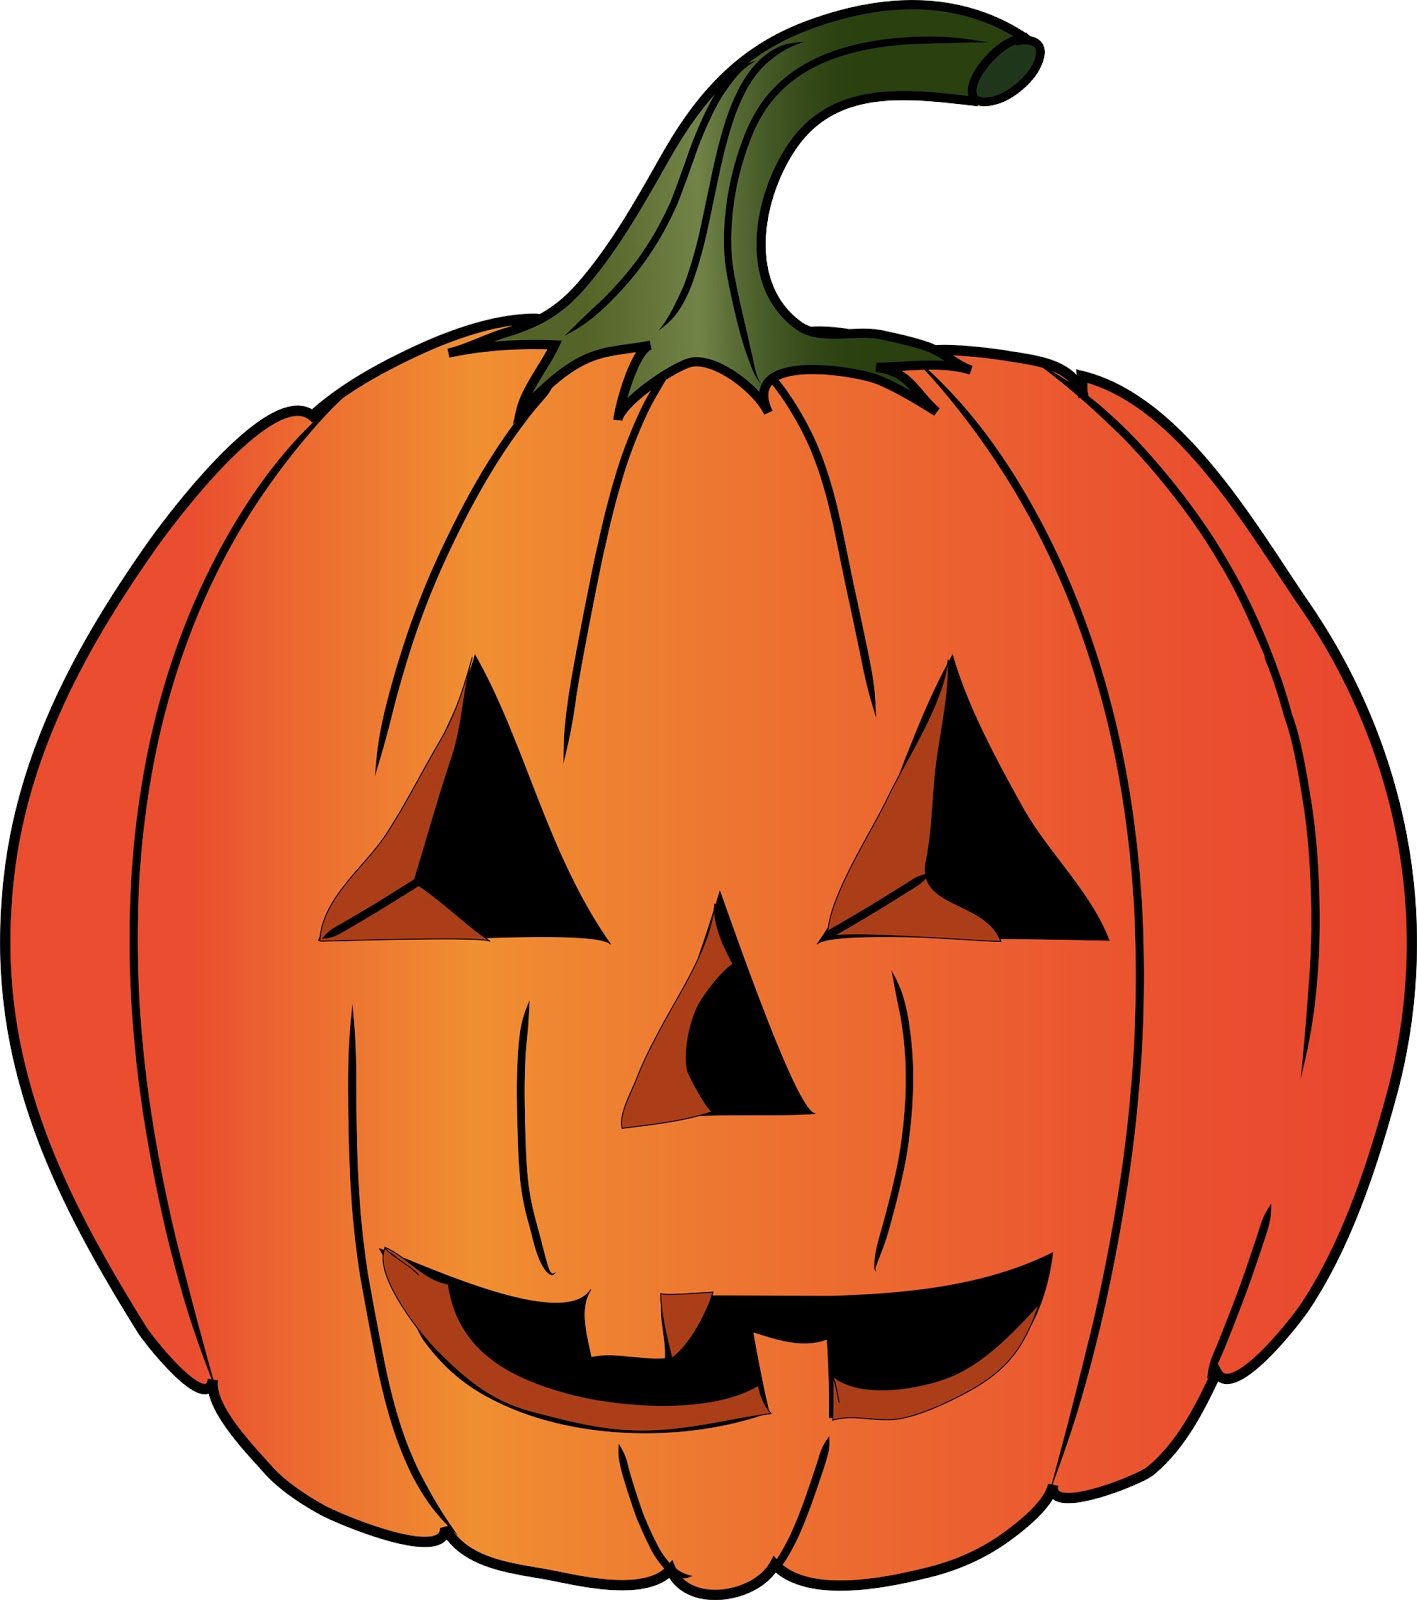 1417x1600 Halloween Pumpkin Carving Clip Art Clipart Panda